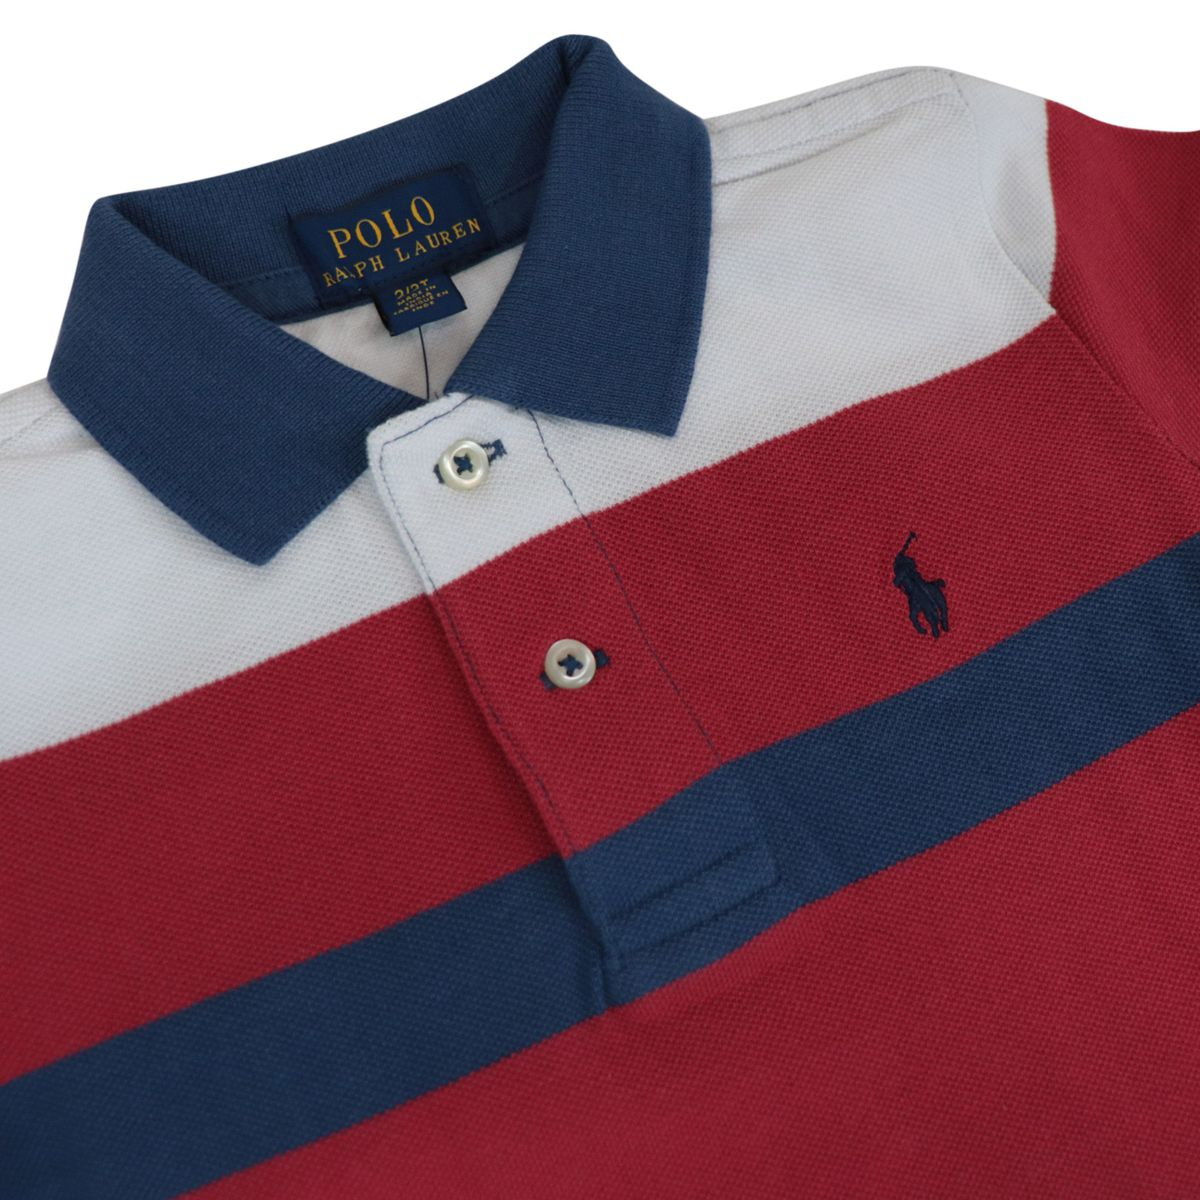 Multicolor striped cotton polo shirt with logo embroidery Red Polo Ralph Lauren